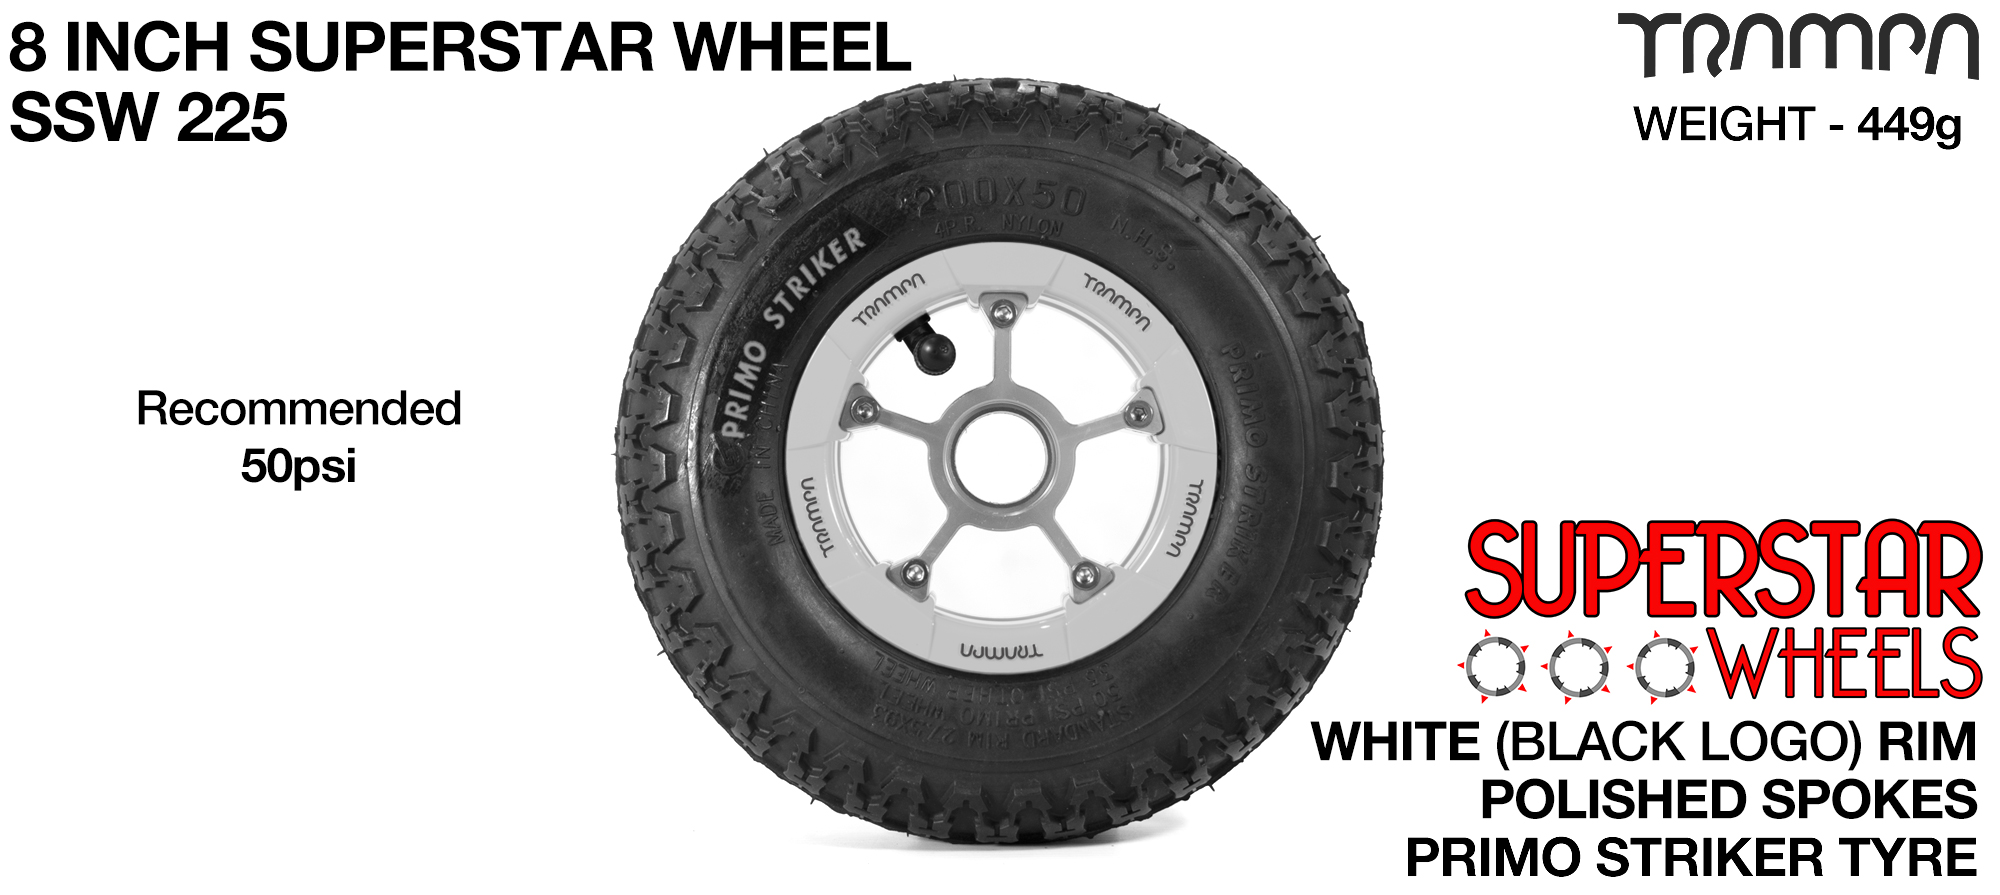 Superstar 8 Inch Wheel - White Superstar Rim Polished Anodised Spokes & Primo Striker 8 Inch Tyre